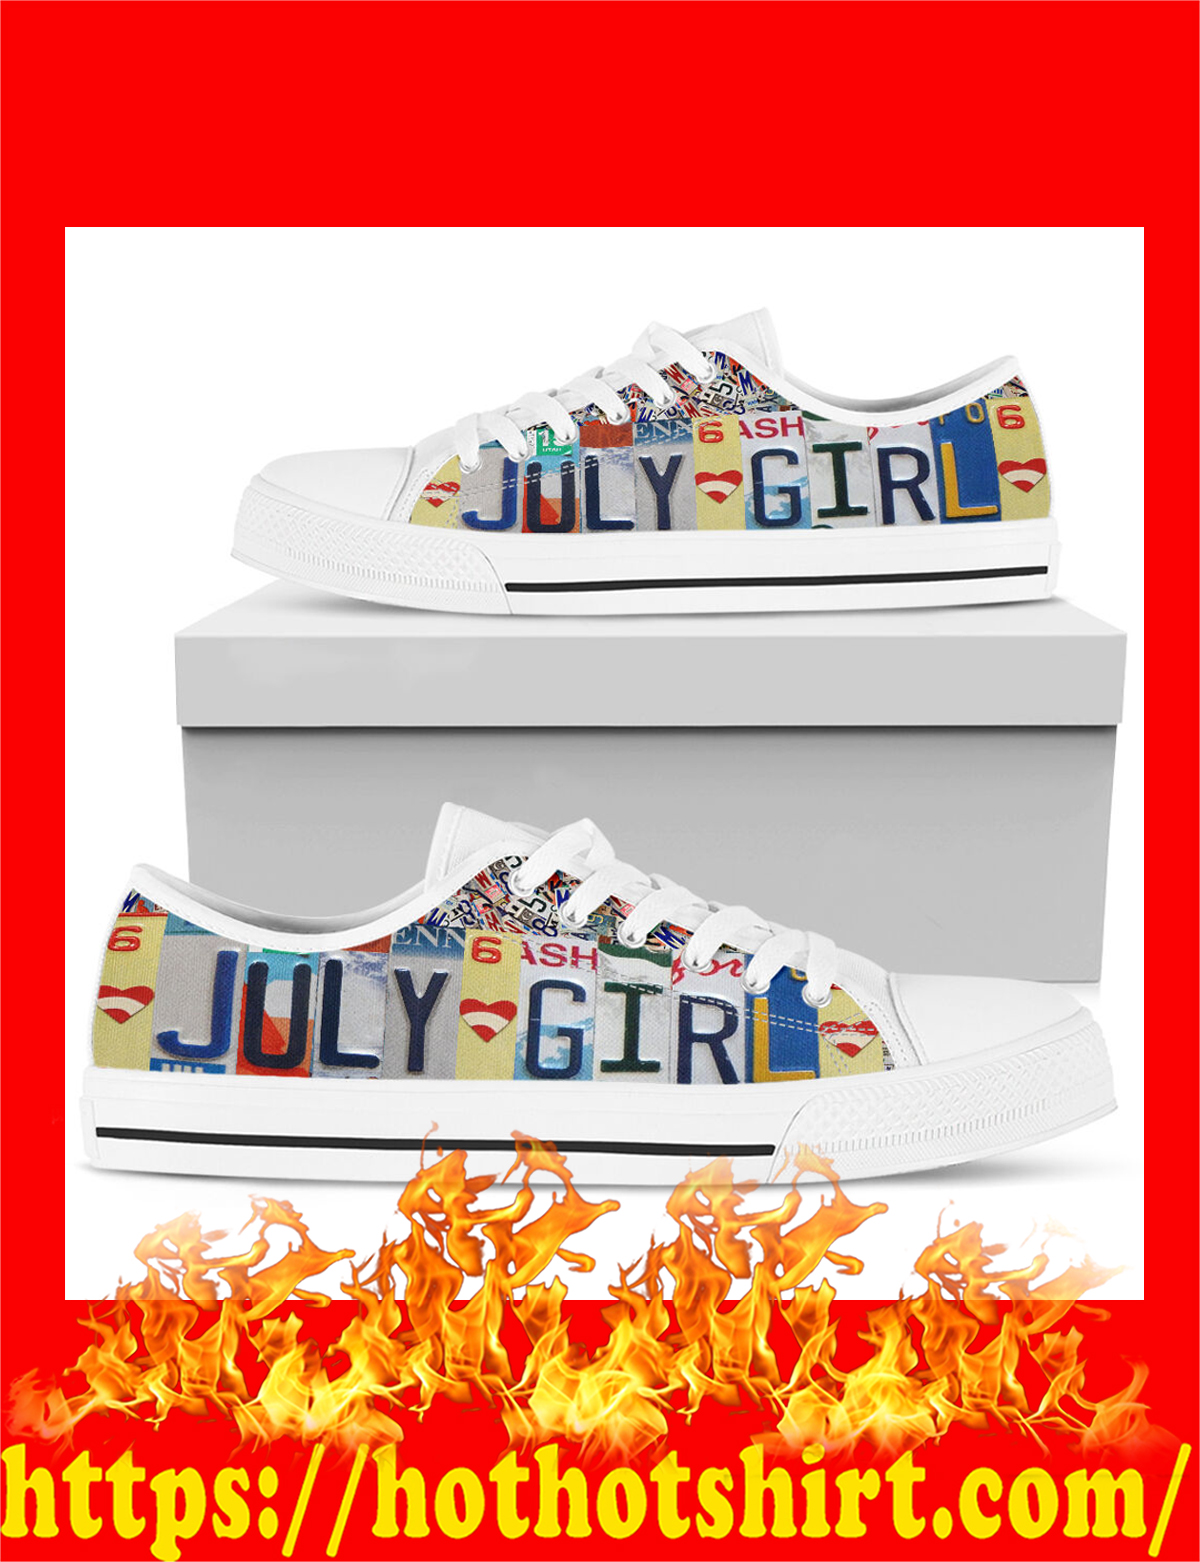 July girl low top shoes - pic 1